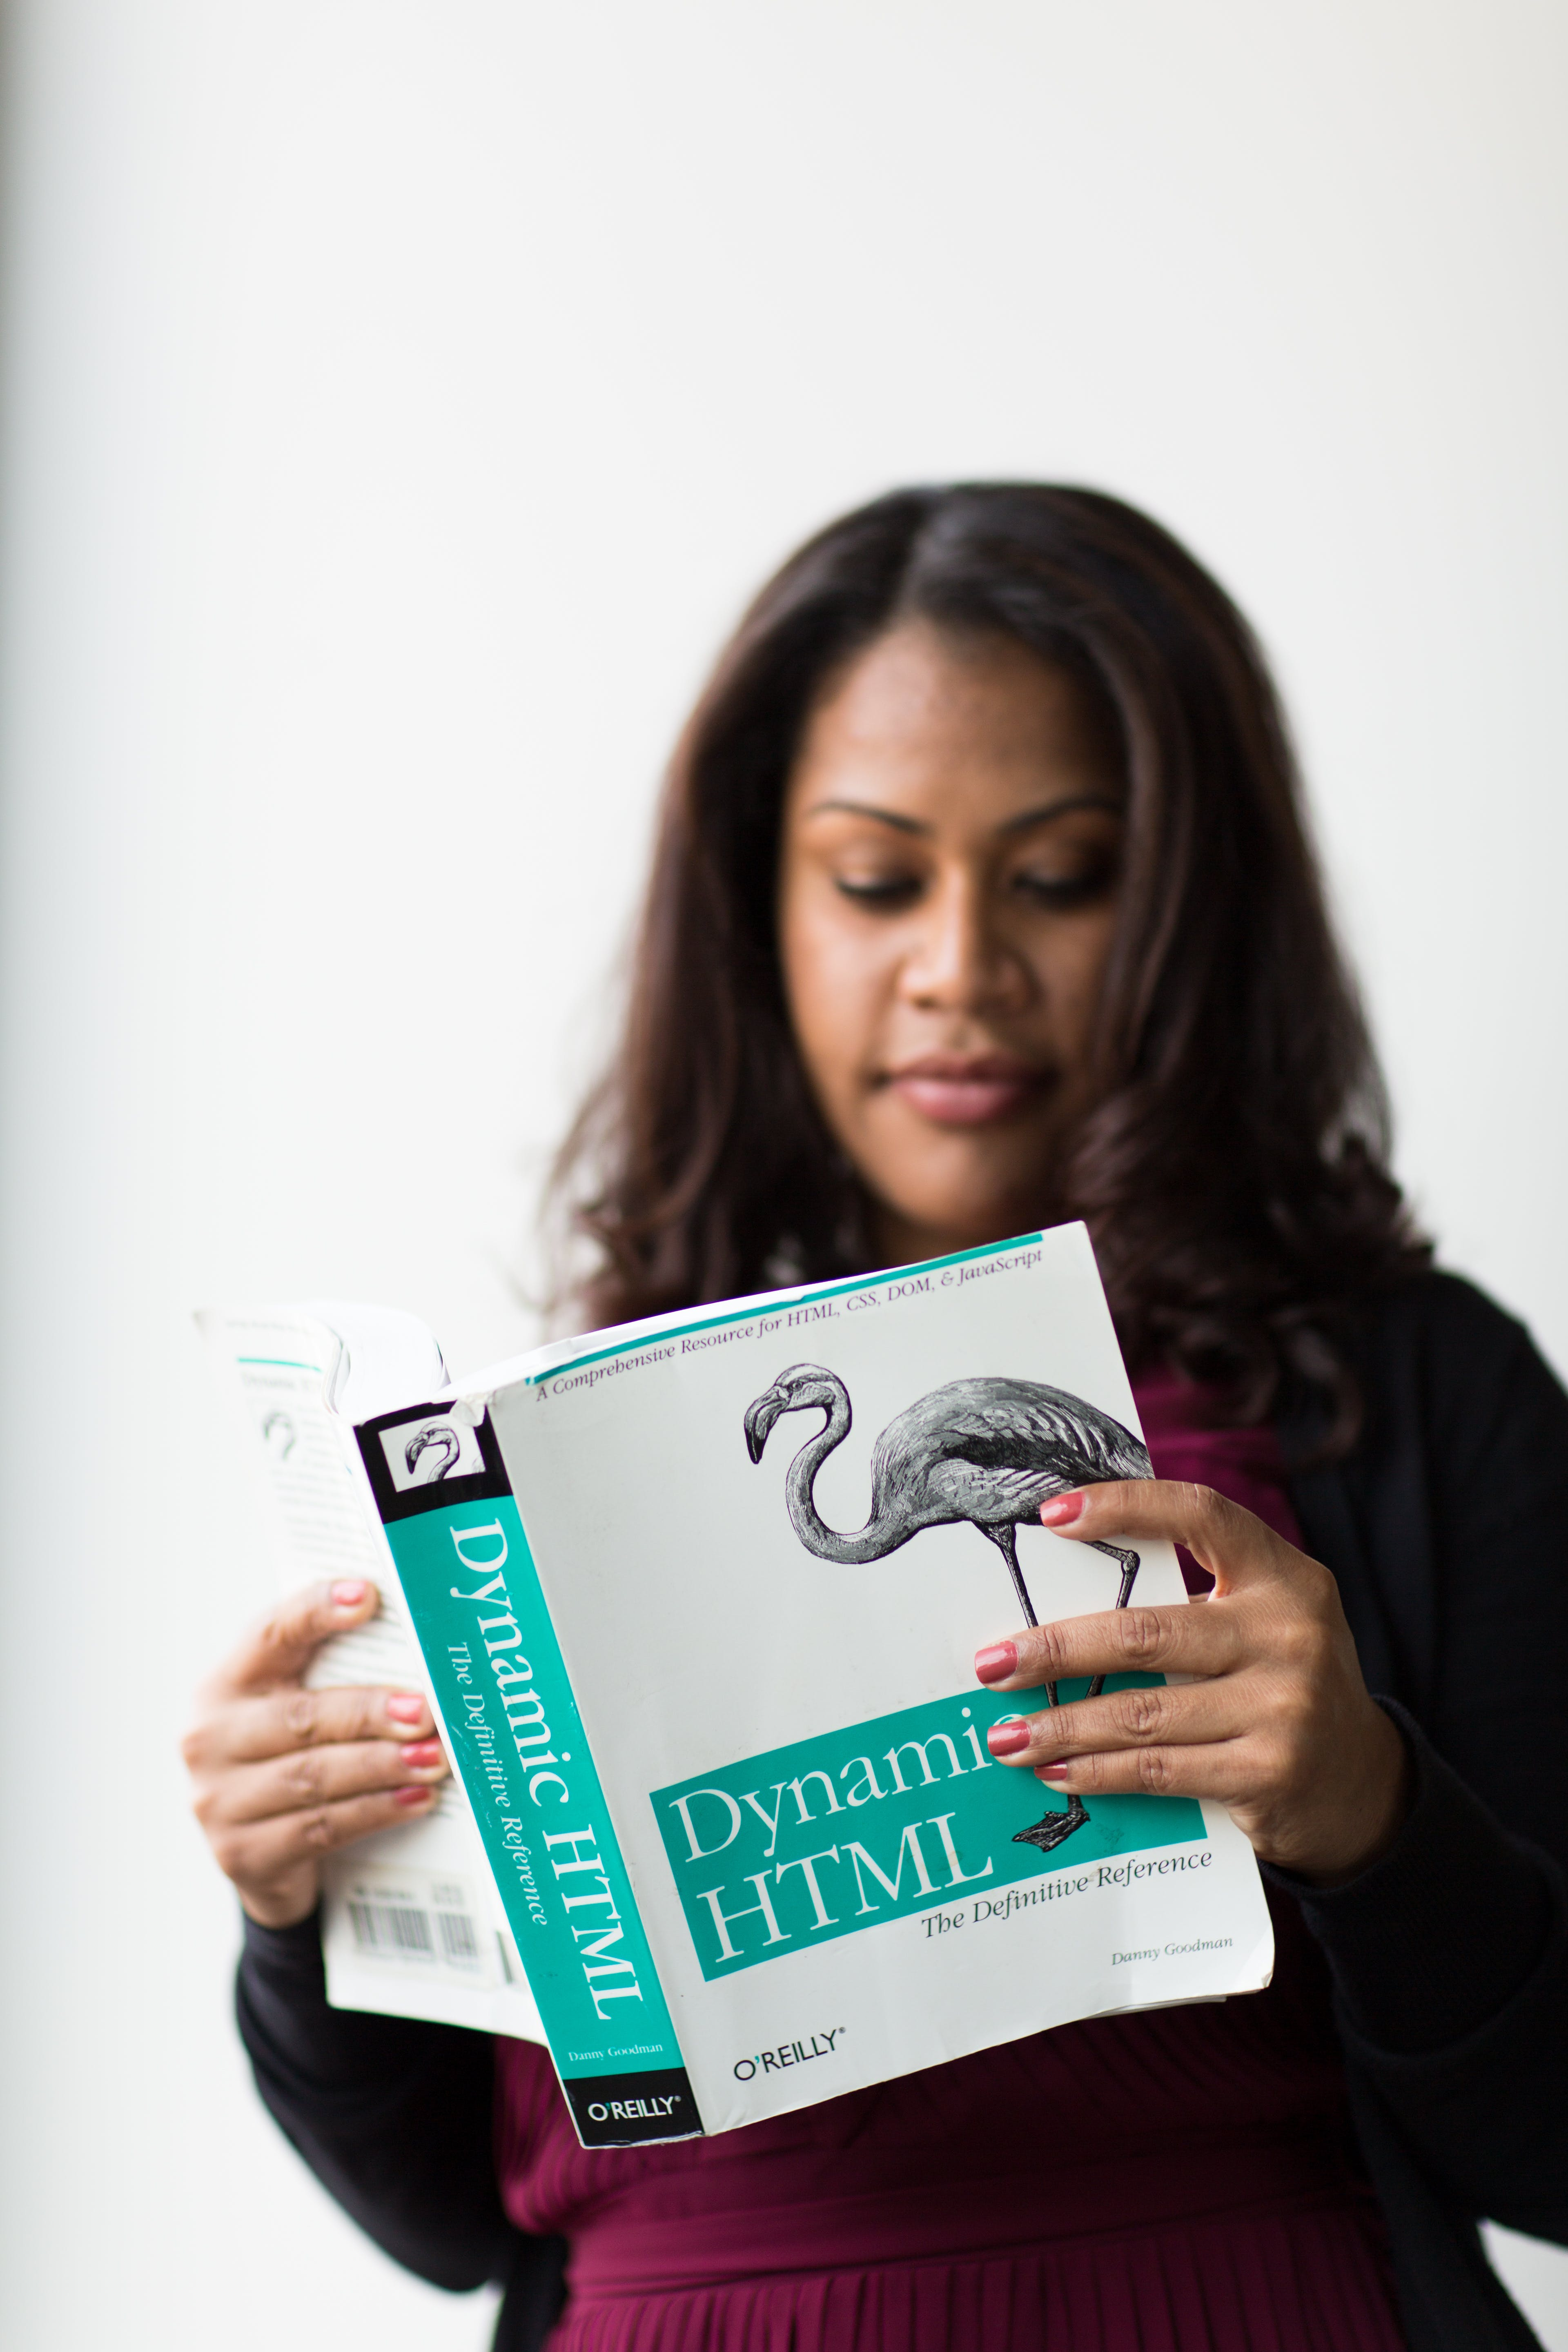 Woman Holding Dynamic Html Book